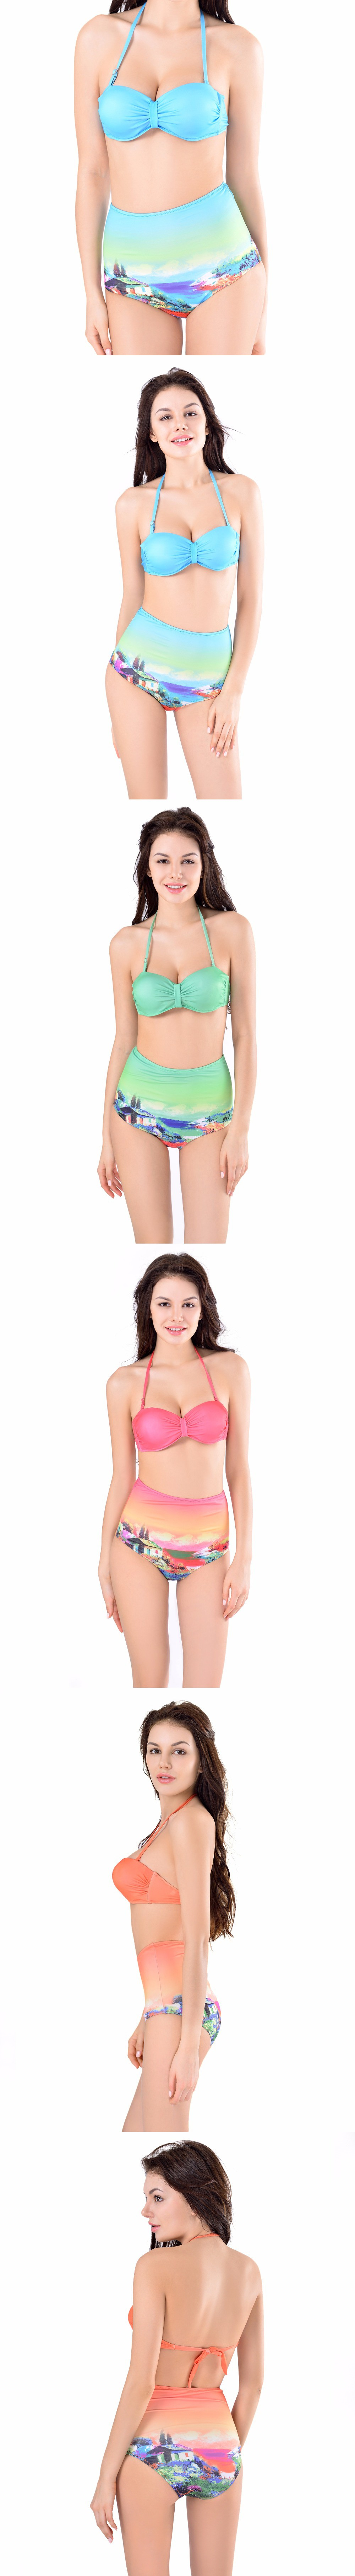 X-HERR High Waist Bikini Halter Two Piece Swimsuit for Women Push up Printed Ladies Bikinis High Quality Sexy Bathing Suit $19.29